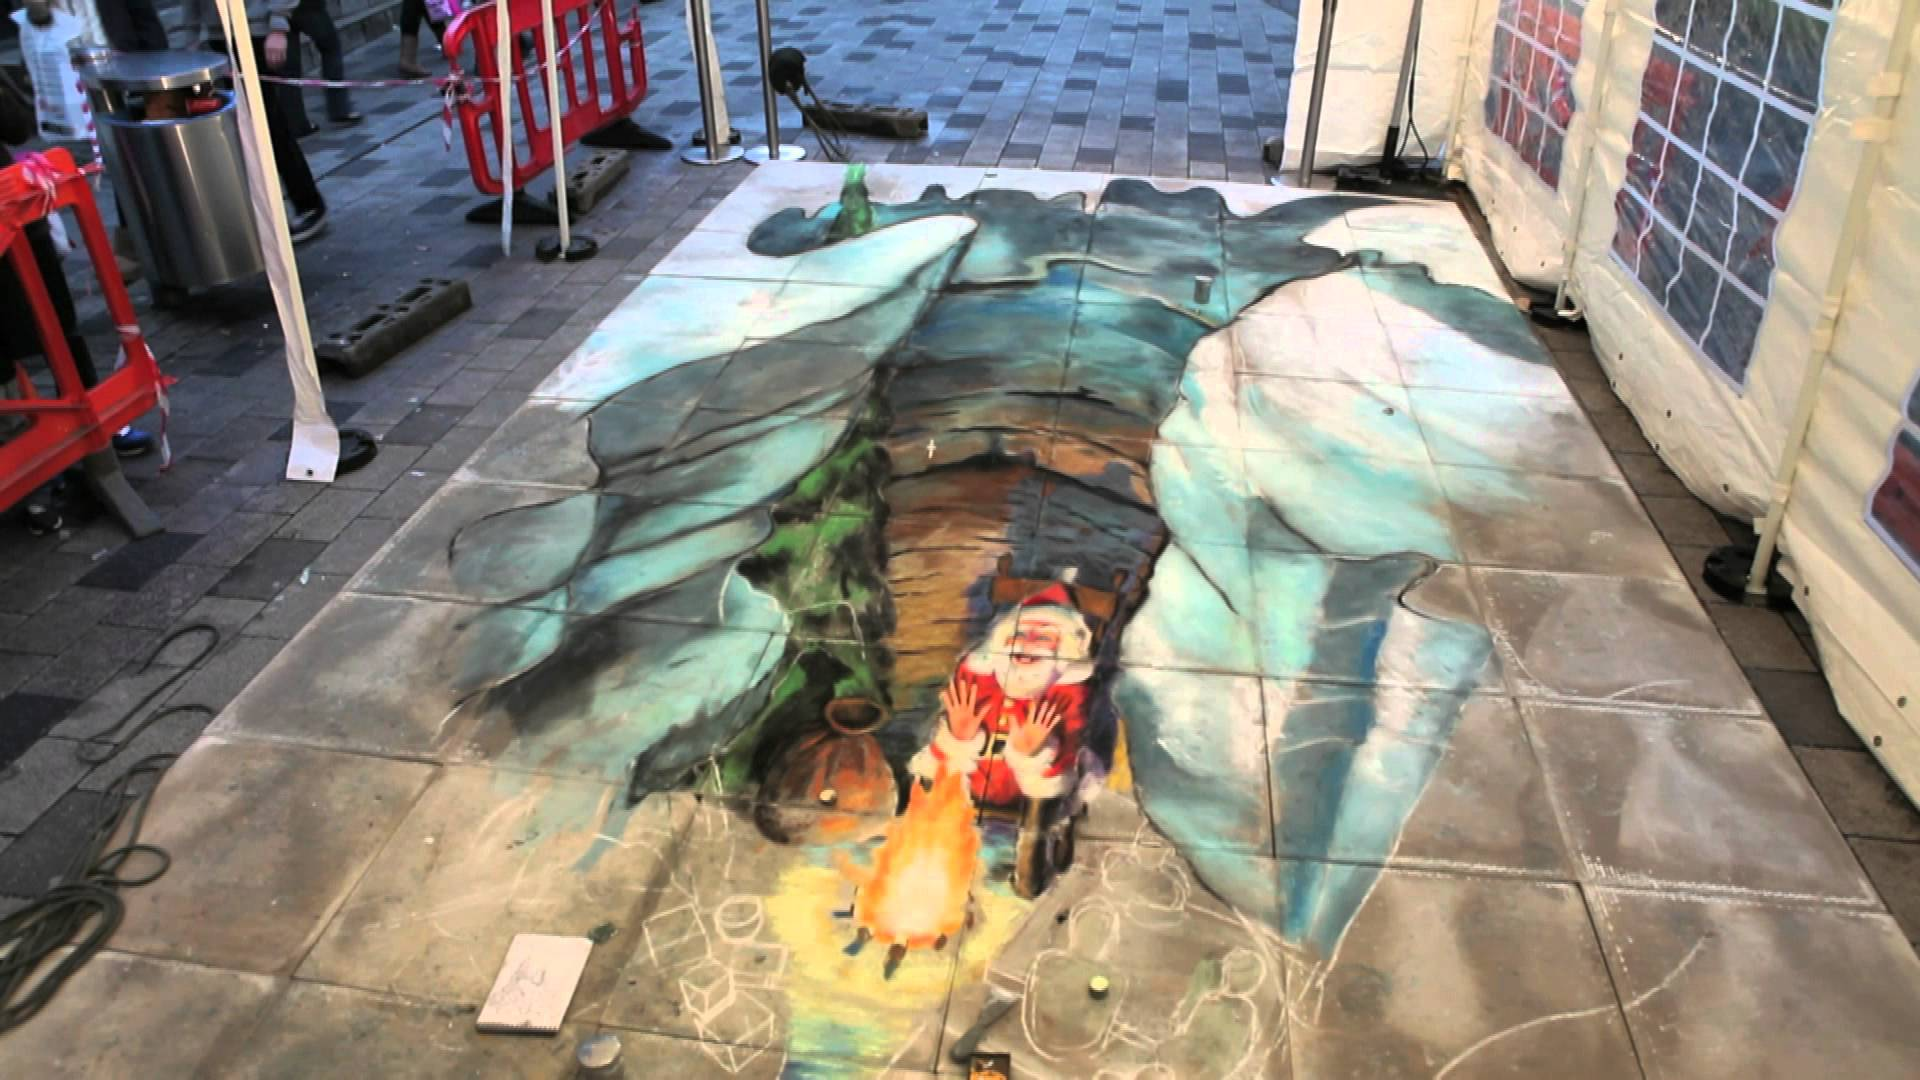 Julian Beever – 3D sidewalk art